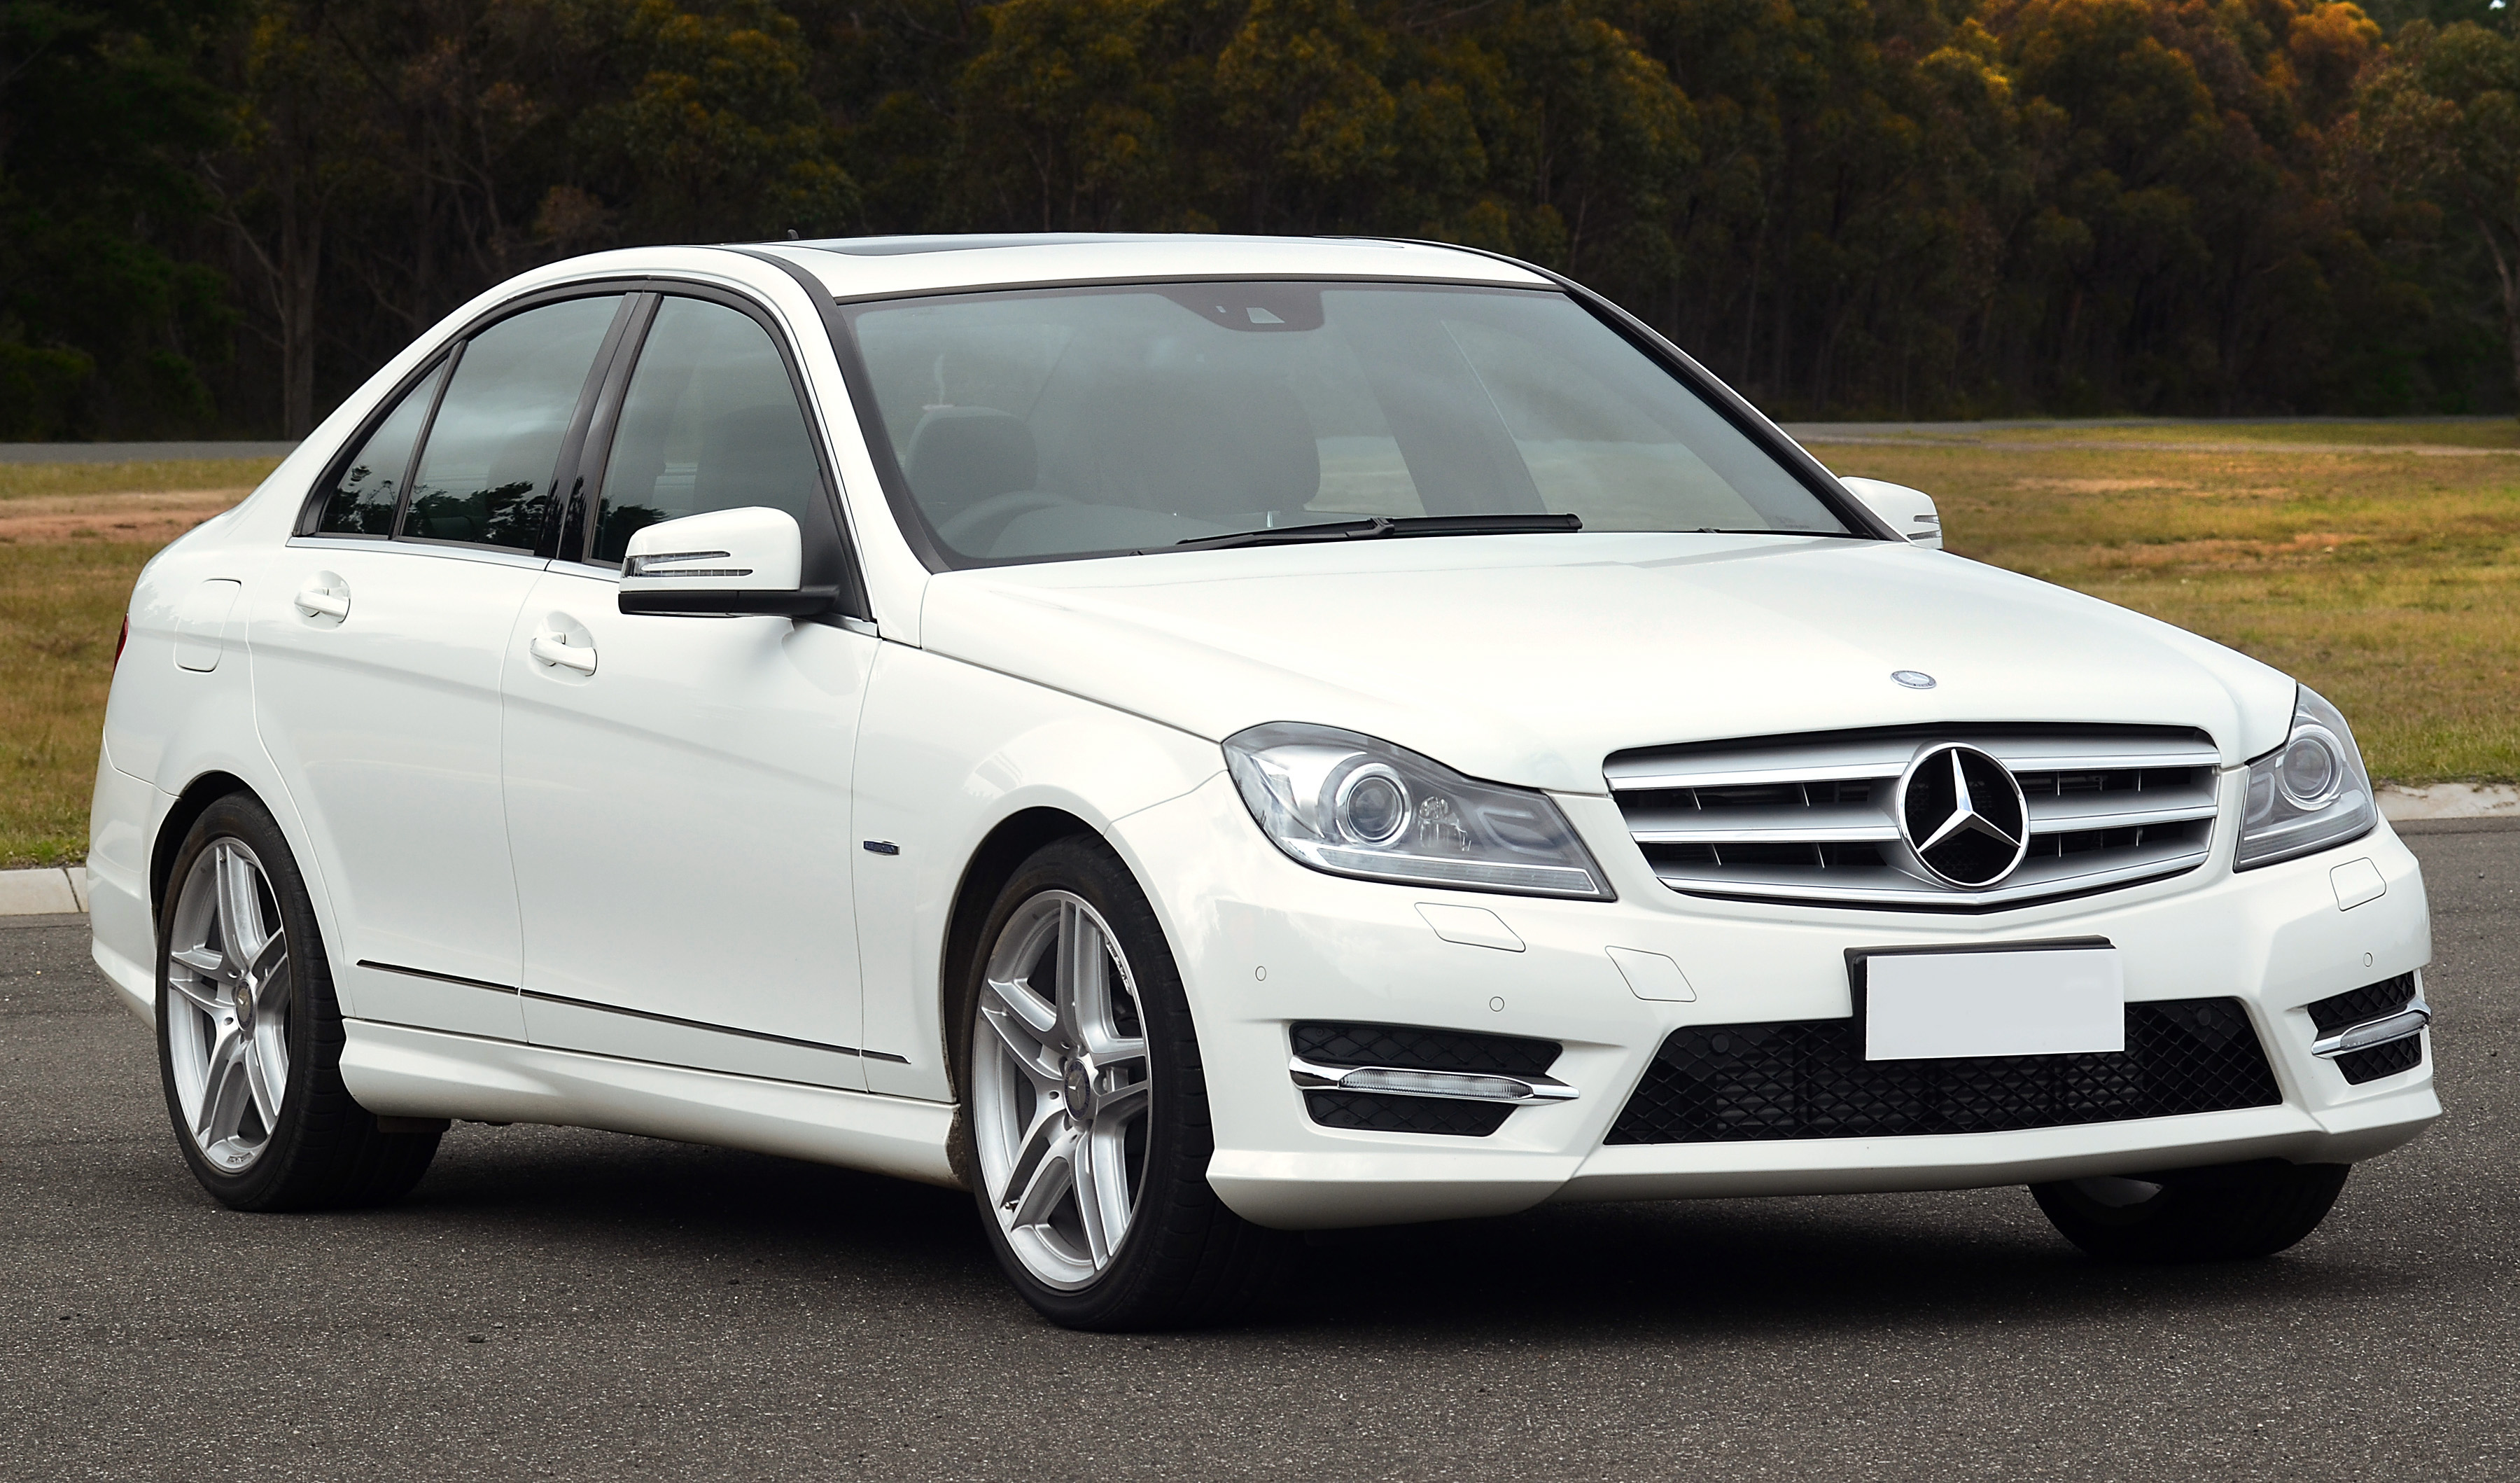 mercedes-benz c 250 blueefficiency-pic. 2